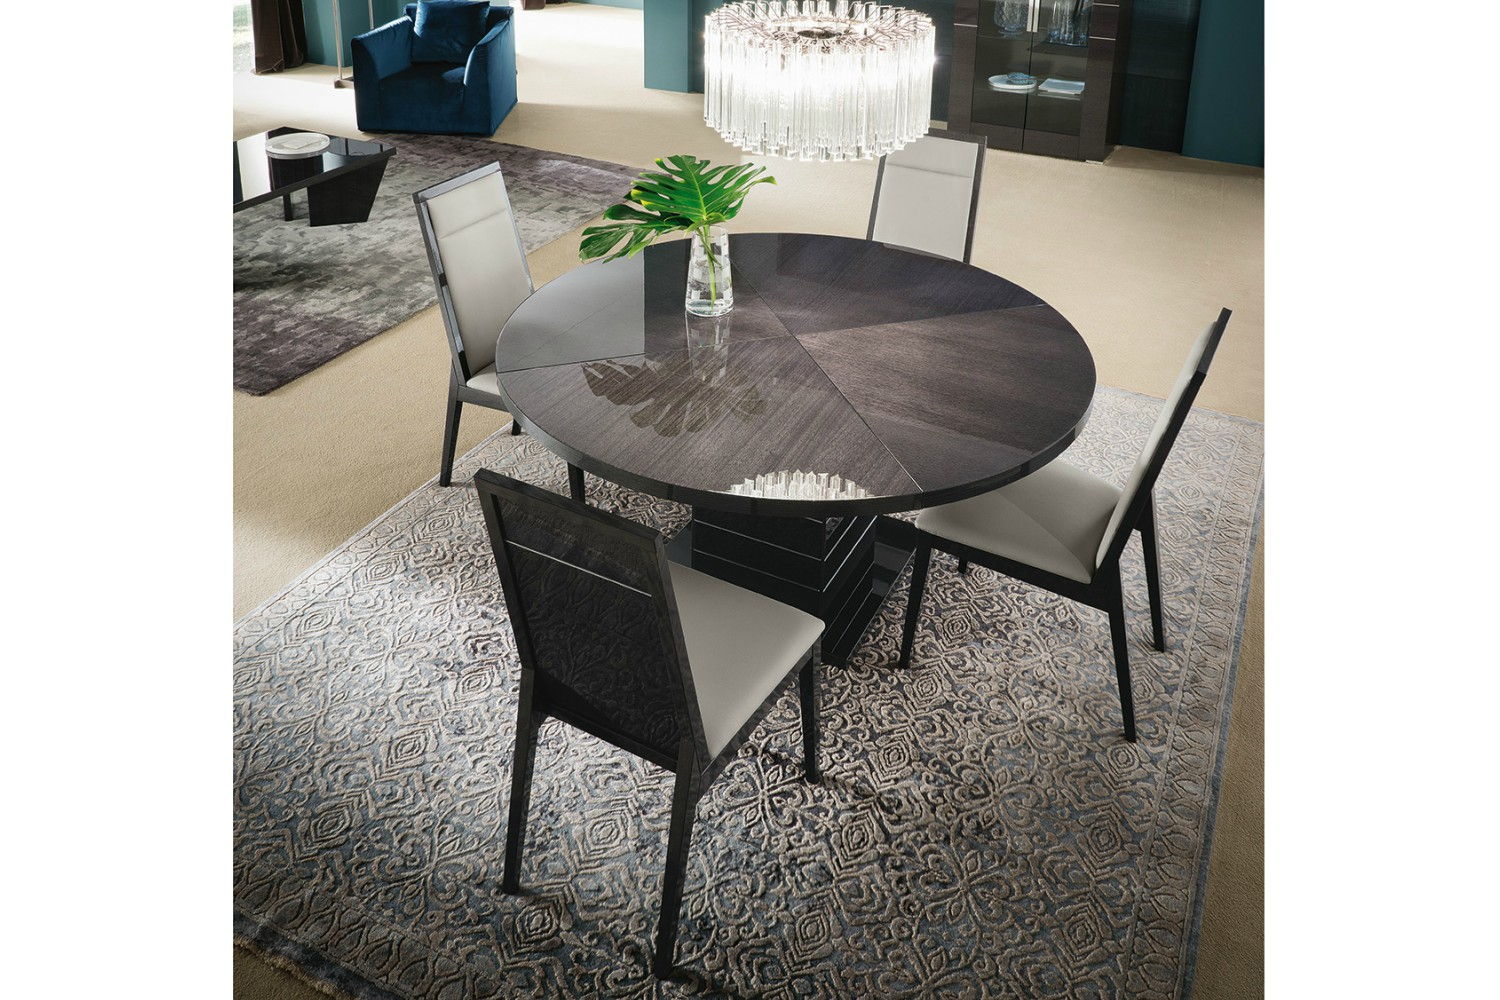 kitchen table round remodeling pittsburgh versilia dining harvey norman ireland pjvr0617kt add to wish list